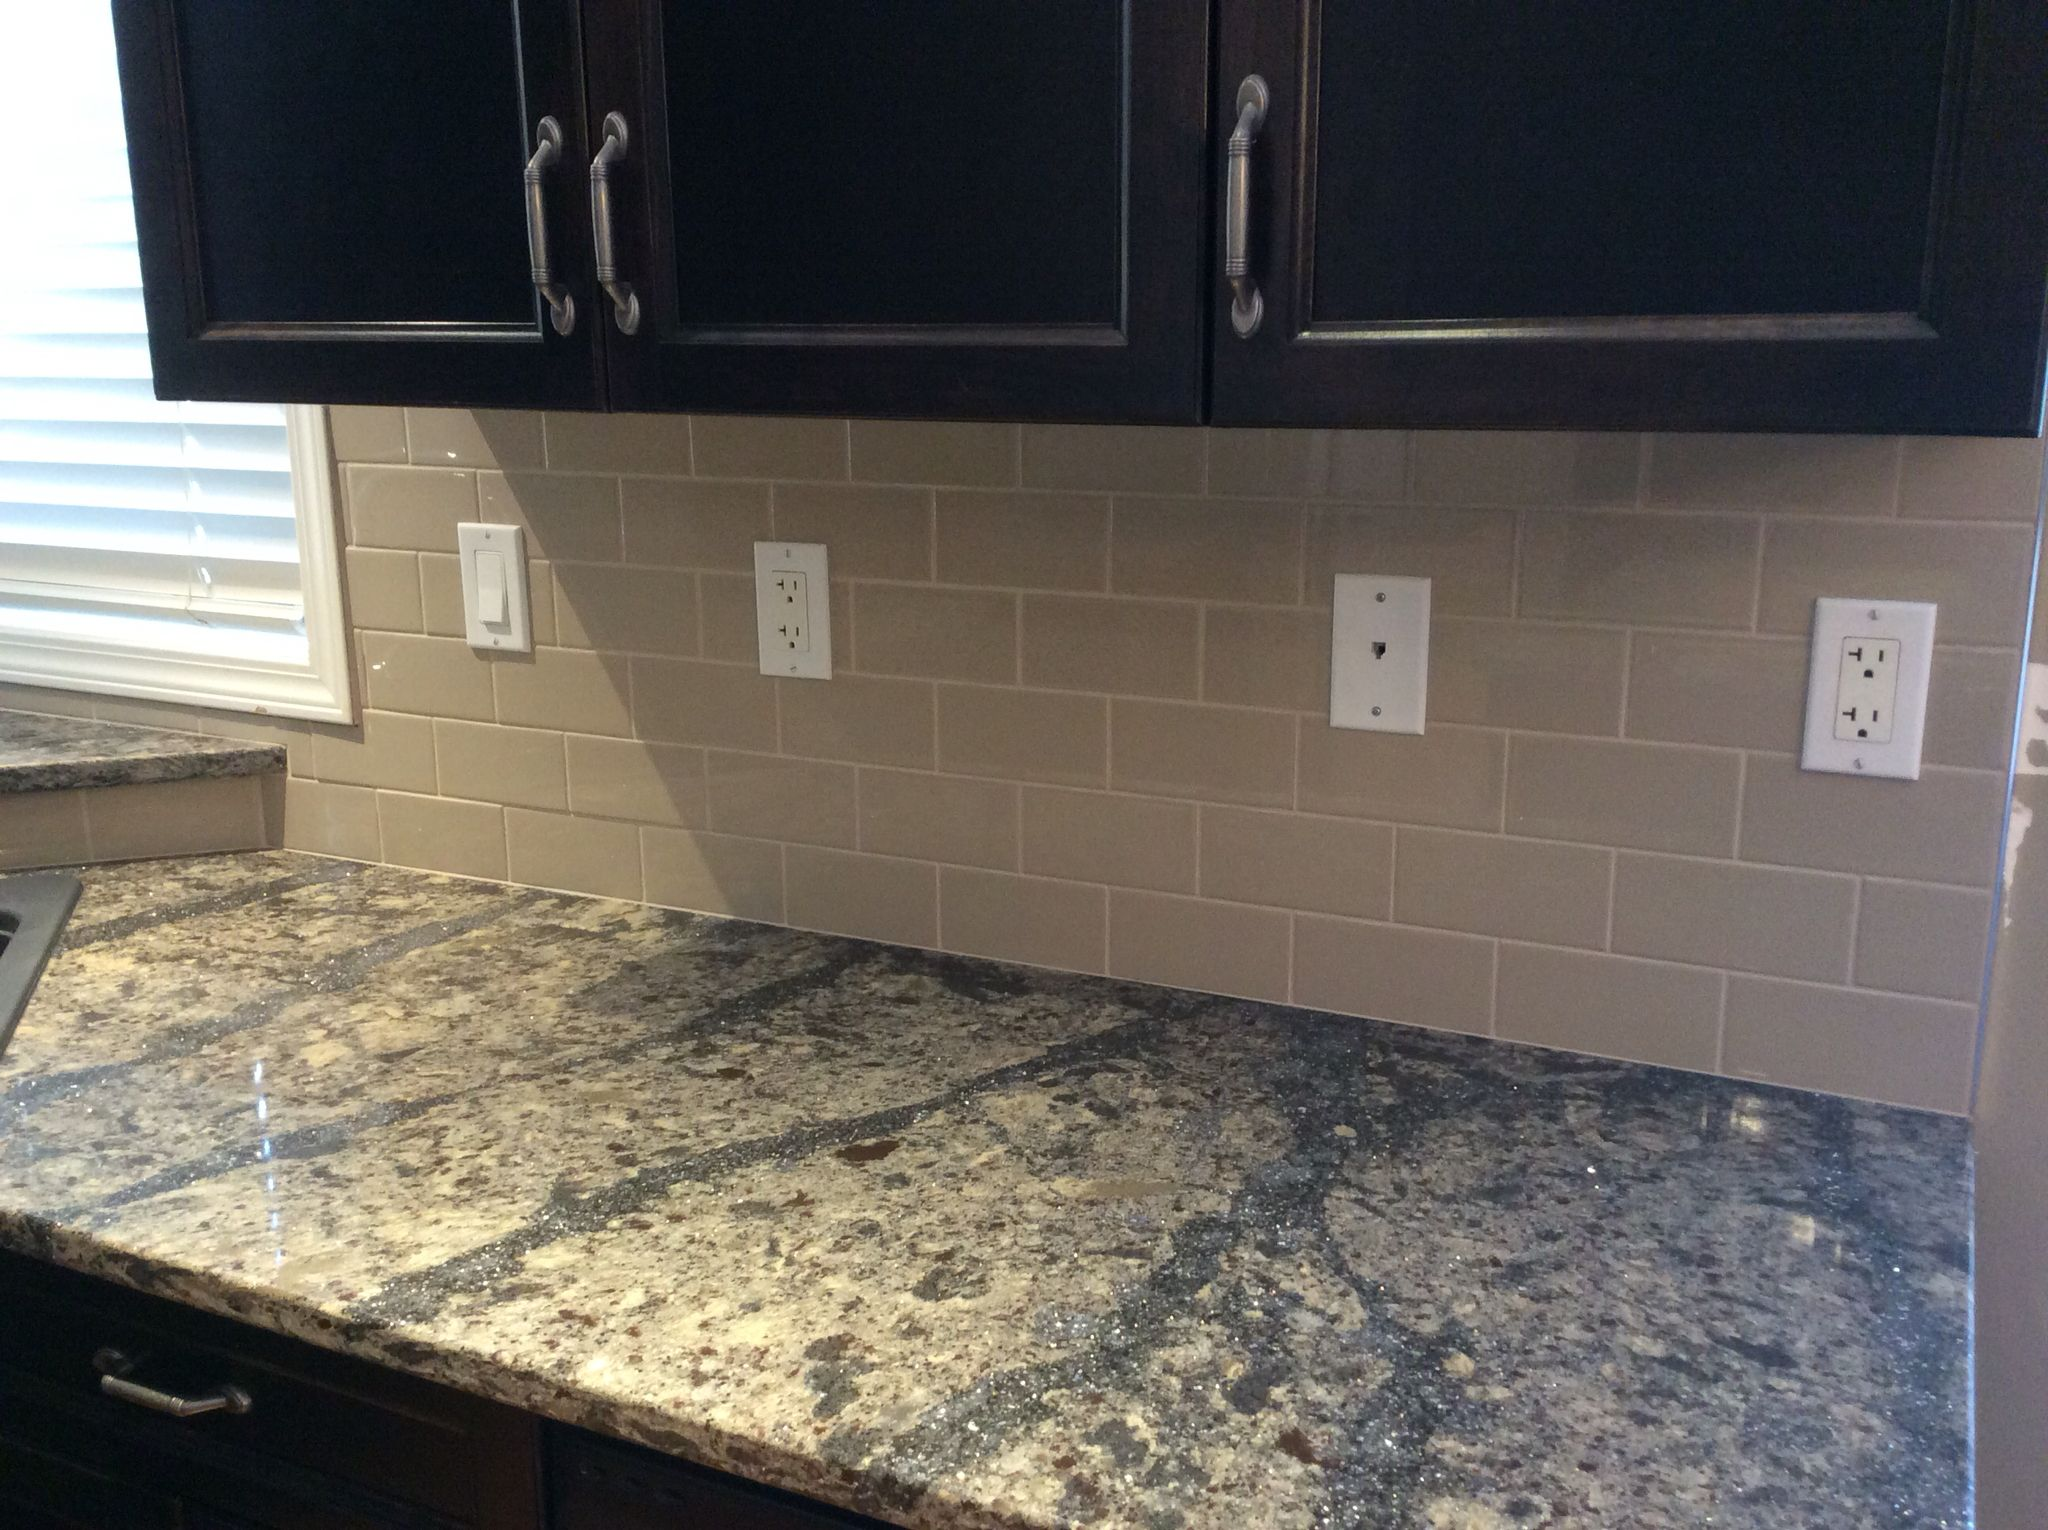 Cambria clyde kitchen and bathroom countertop color - Kitchen Reno 2016 Cambria Quartz Countertops Langdon Taupe Glossy Subway Backsplash Tile